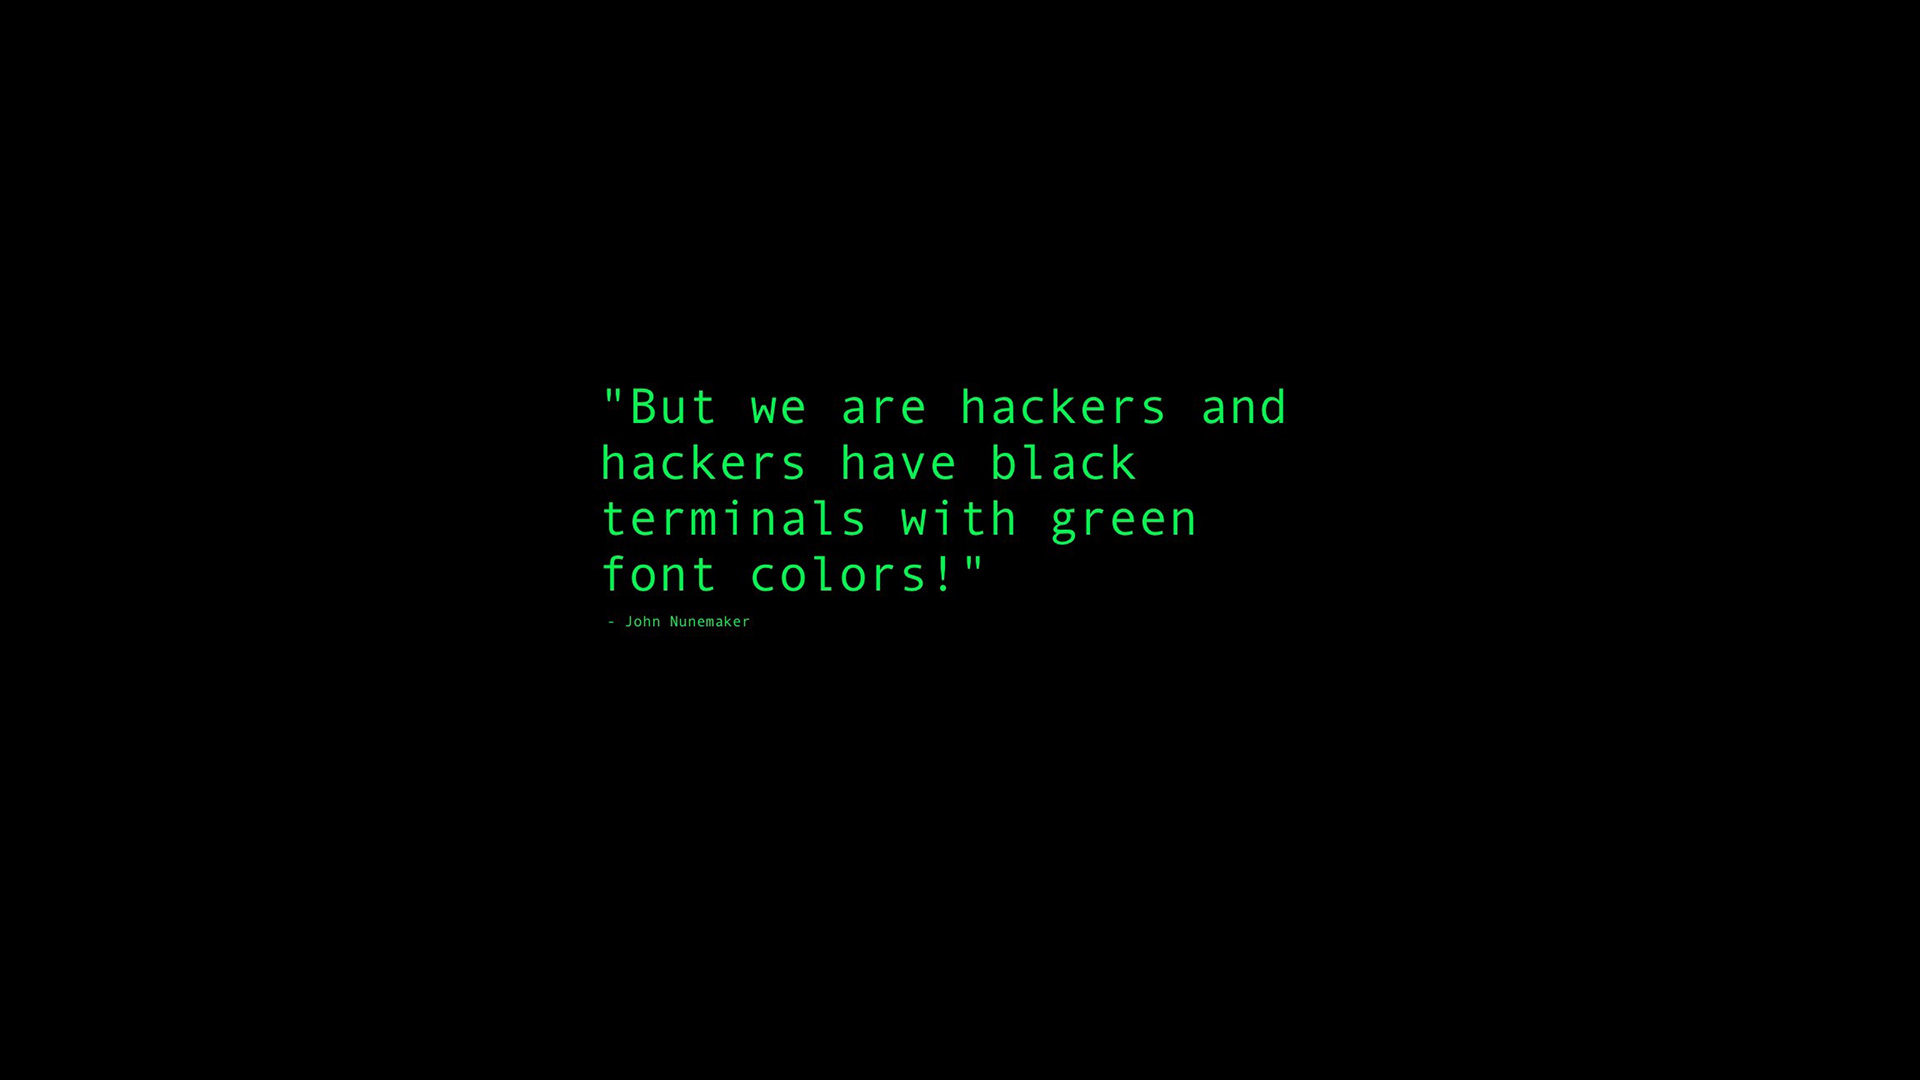 Black Terminals With Green Font Colors Quote